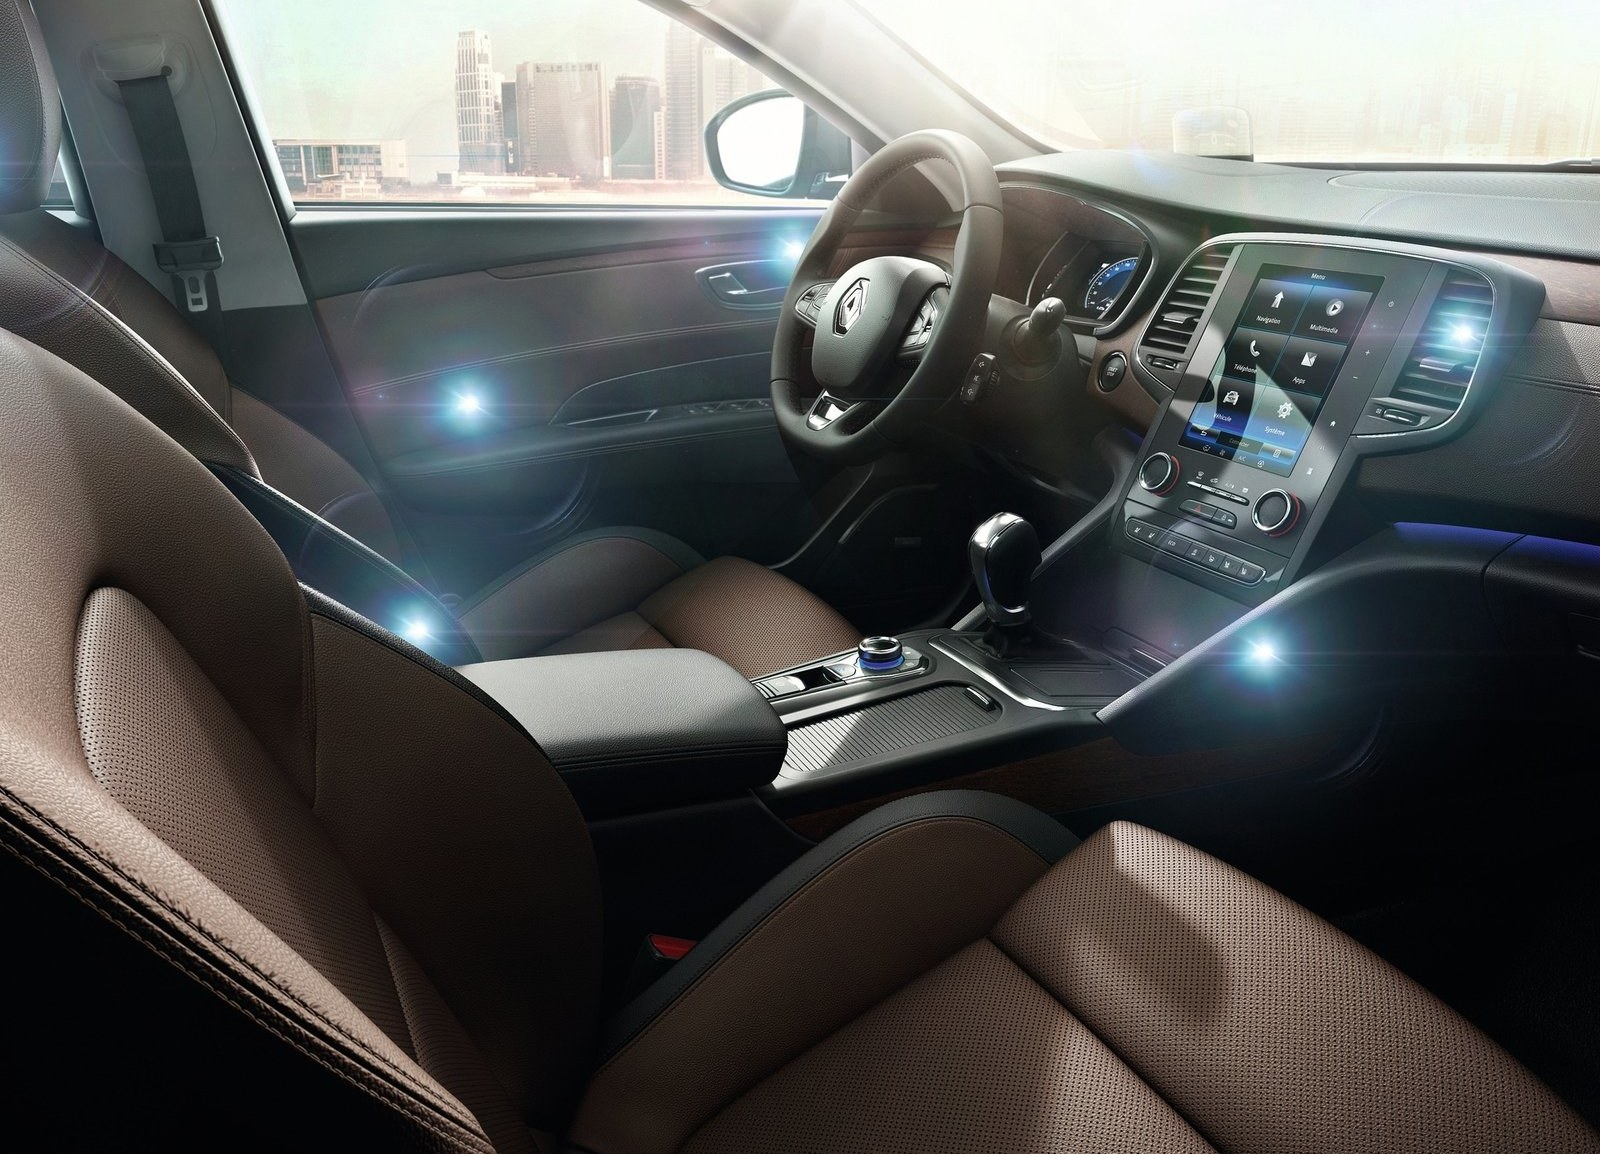 2016 Renault Talisman Front Seats Interior (View 10 of 14)